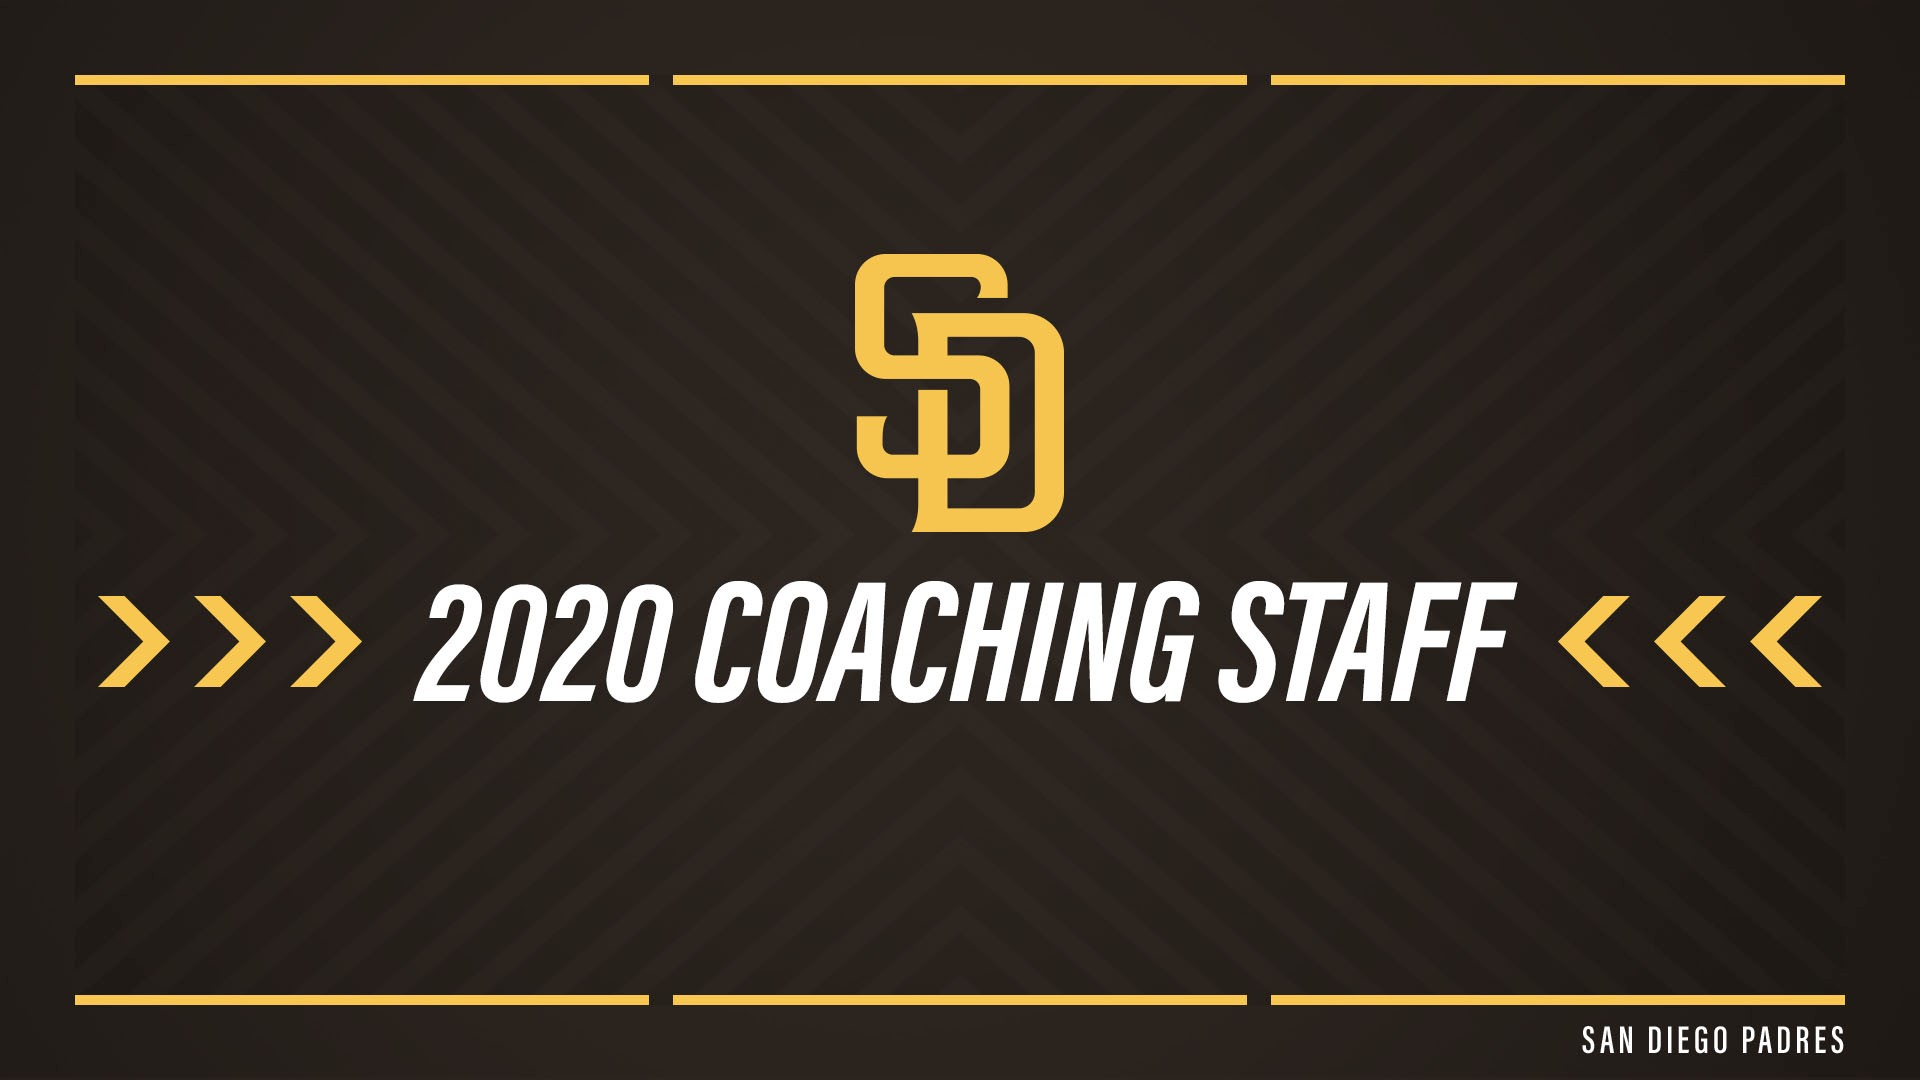 Padres Home Schedule 2020.Padres Announce 2020 Major League Coaching Staff Friarwire